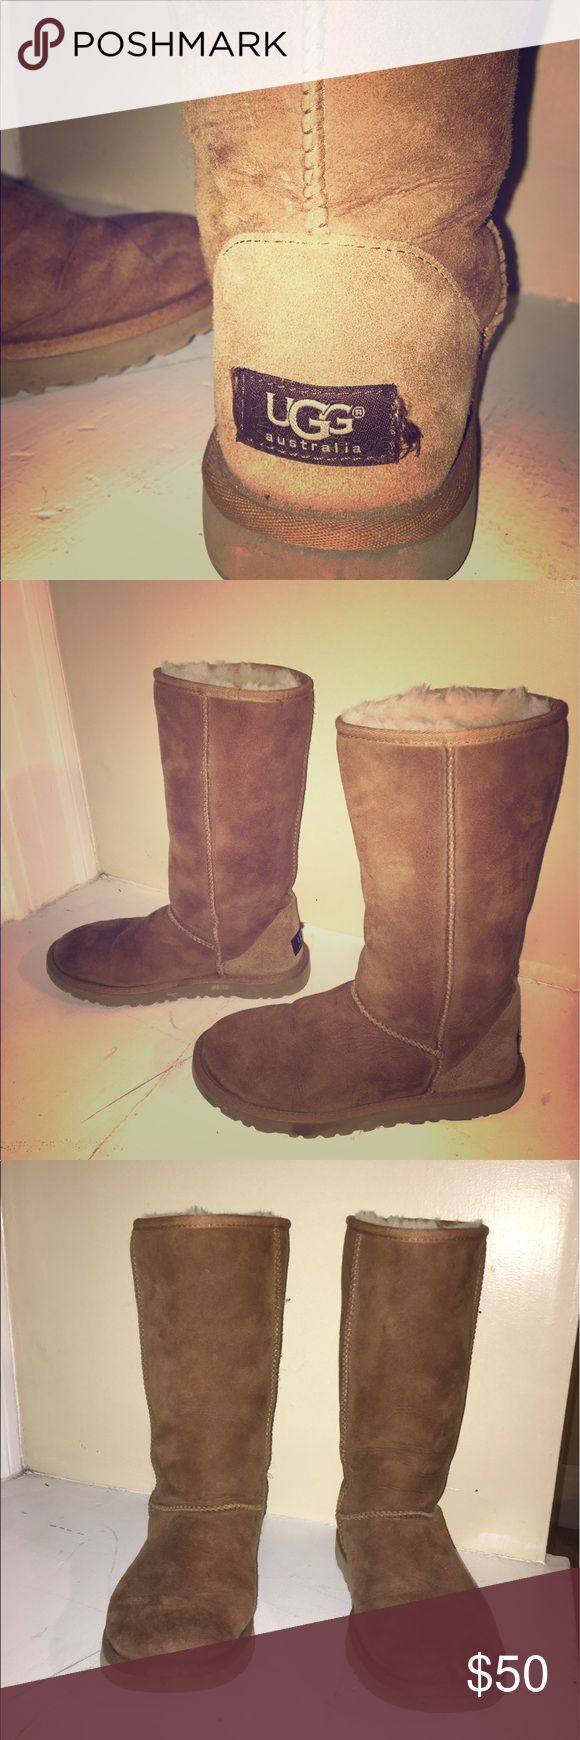 UGG BOOTS! Classic tall chestnut ugg boots for sale! Barely worn and already water-resistant treated! Price is negotiable. UGG Shoes Winter & Rain Boots